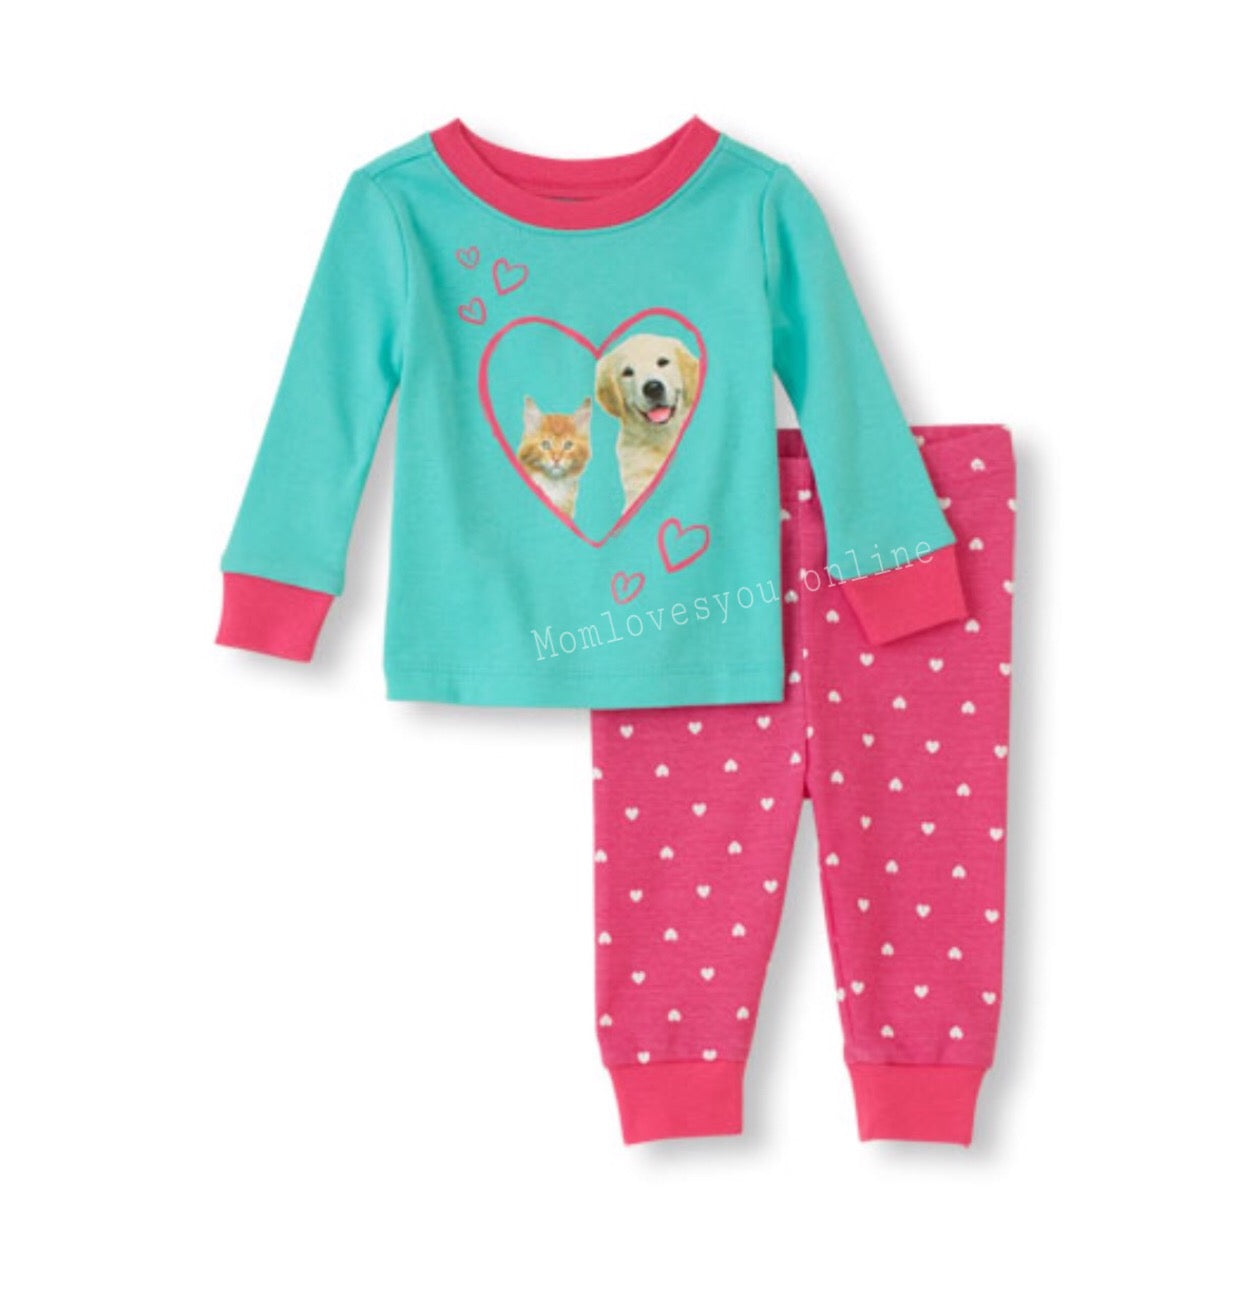 5b07d6c90 The Children s Place - snug fit cotton sleepwear toddler girl – Mom ...